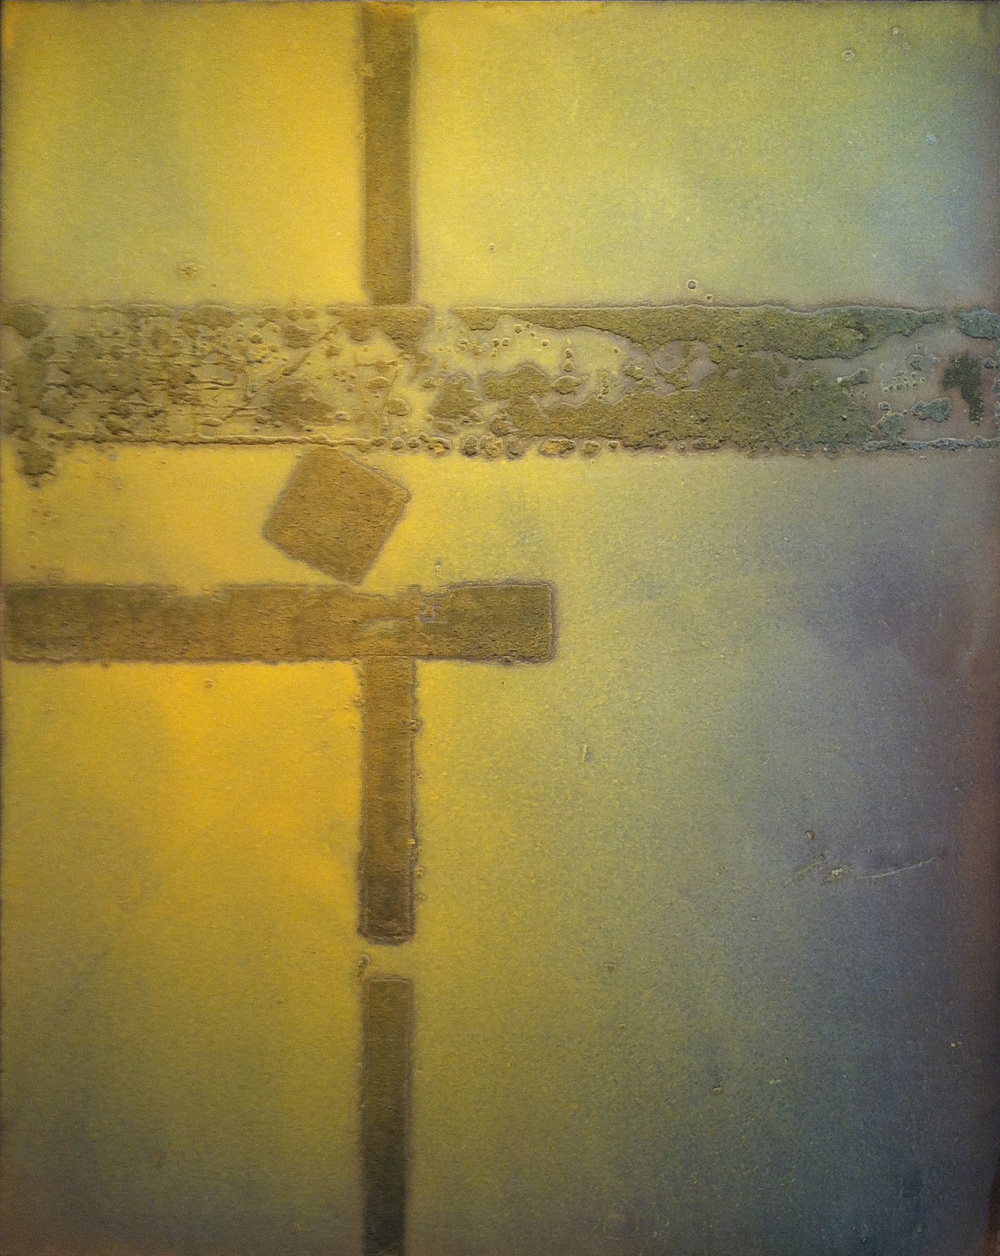 Glow Structure , 1971 oil and sand on canvas, 50 x 40 inches